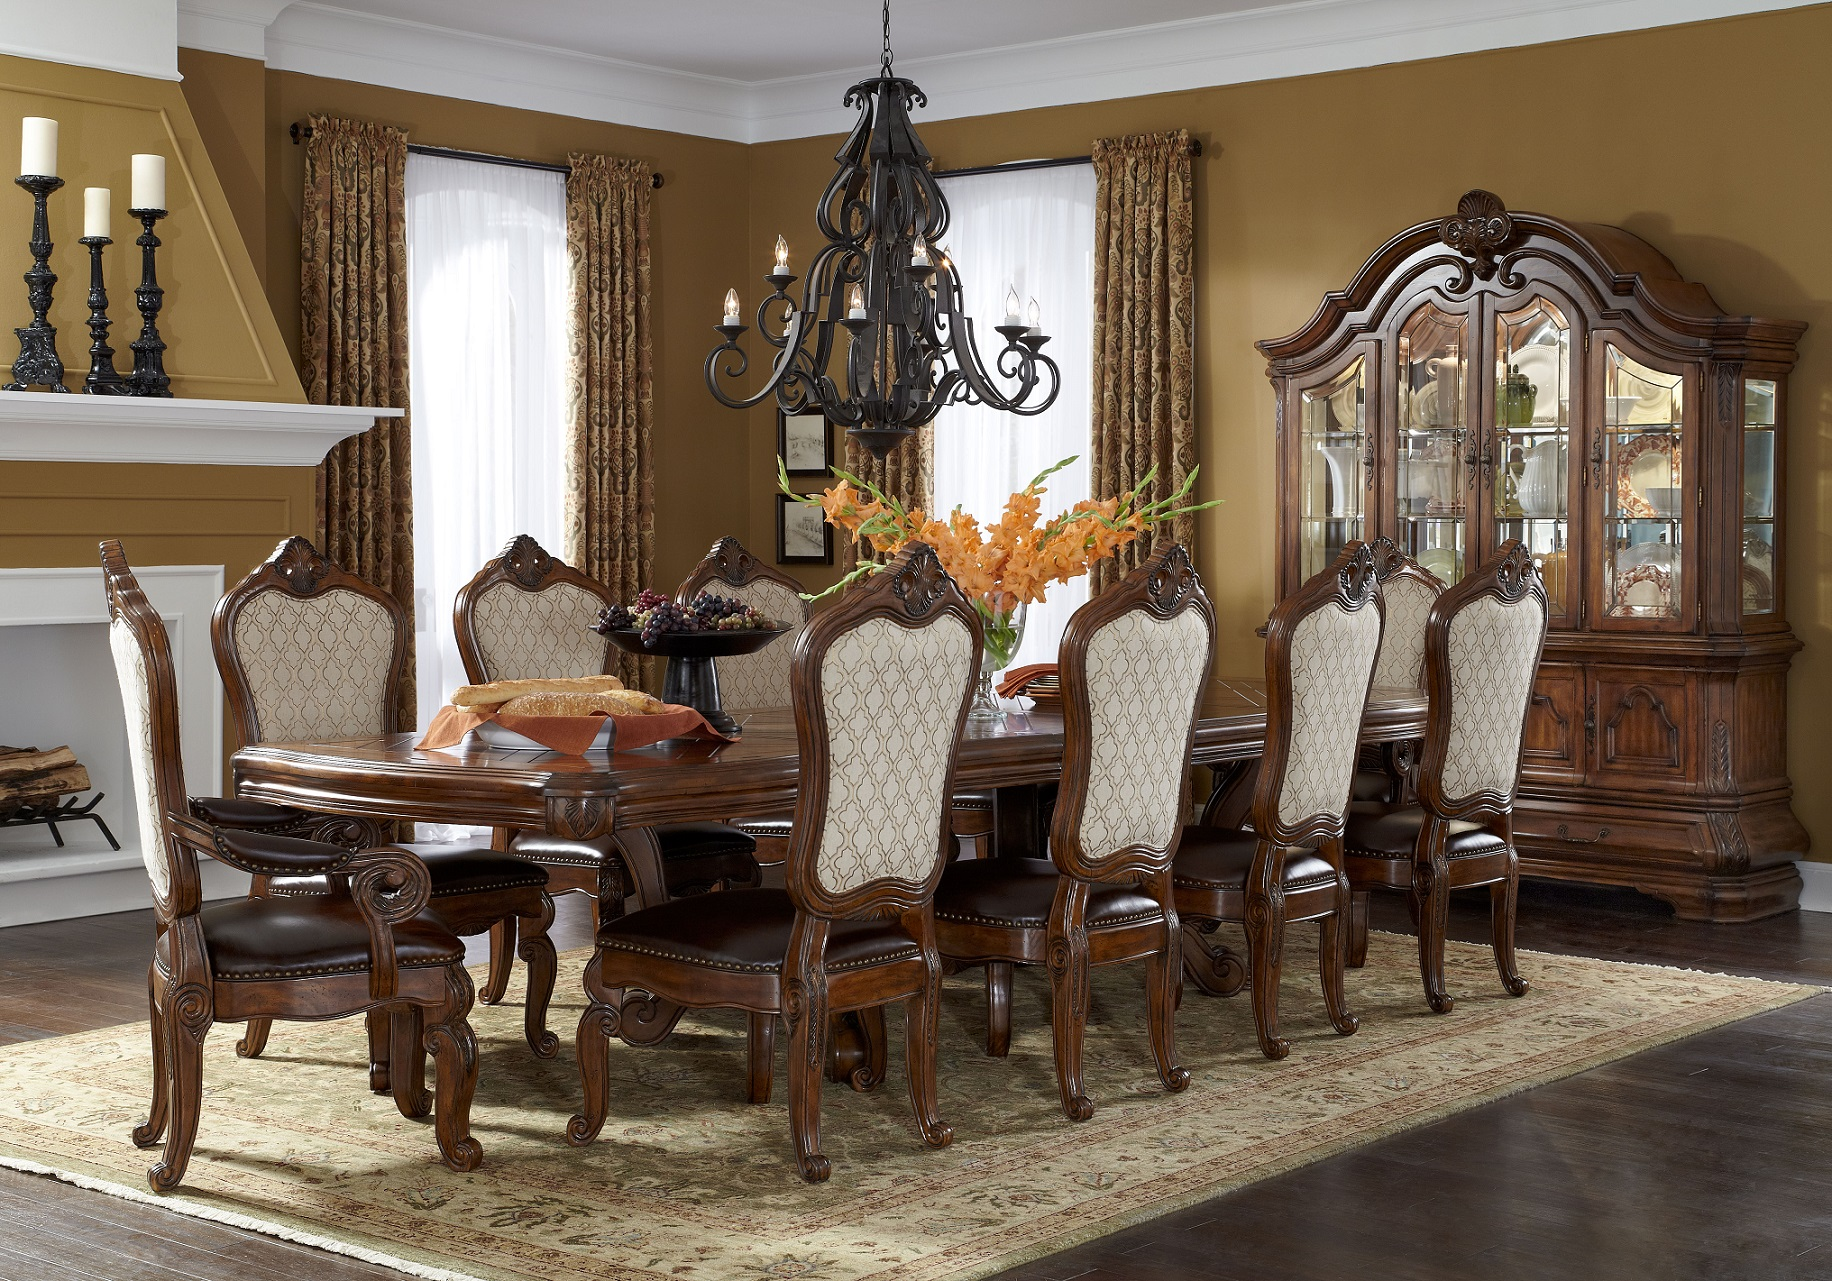 10 chair dining room set 11 dining room set homesfeed 7257